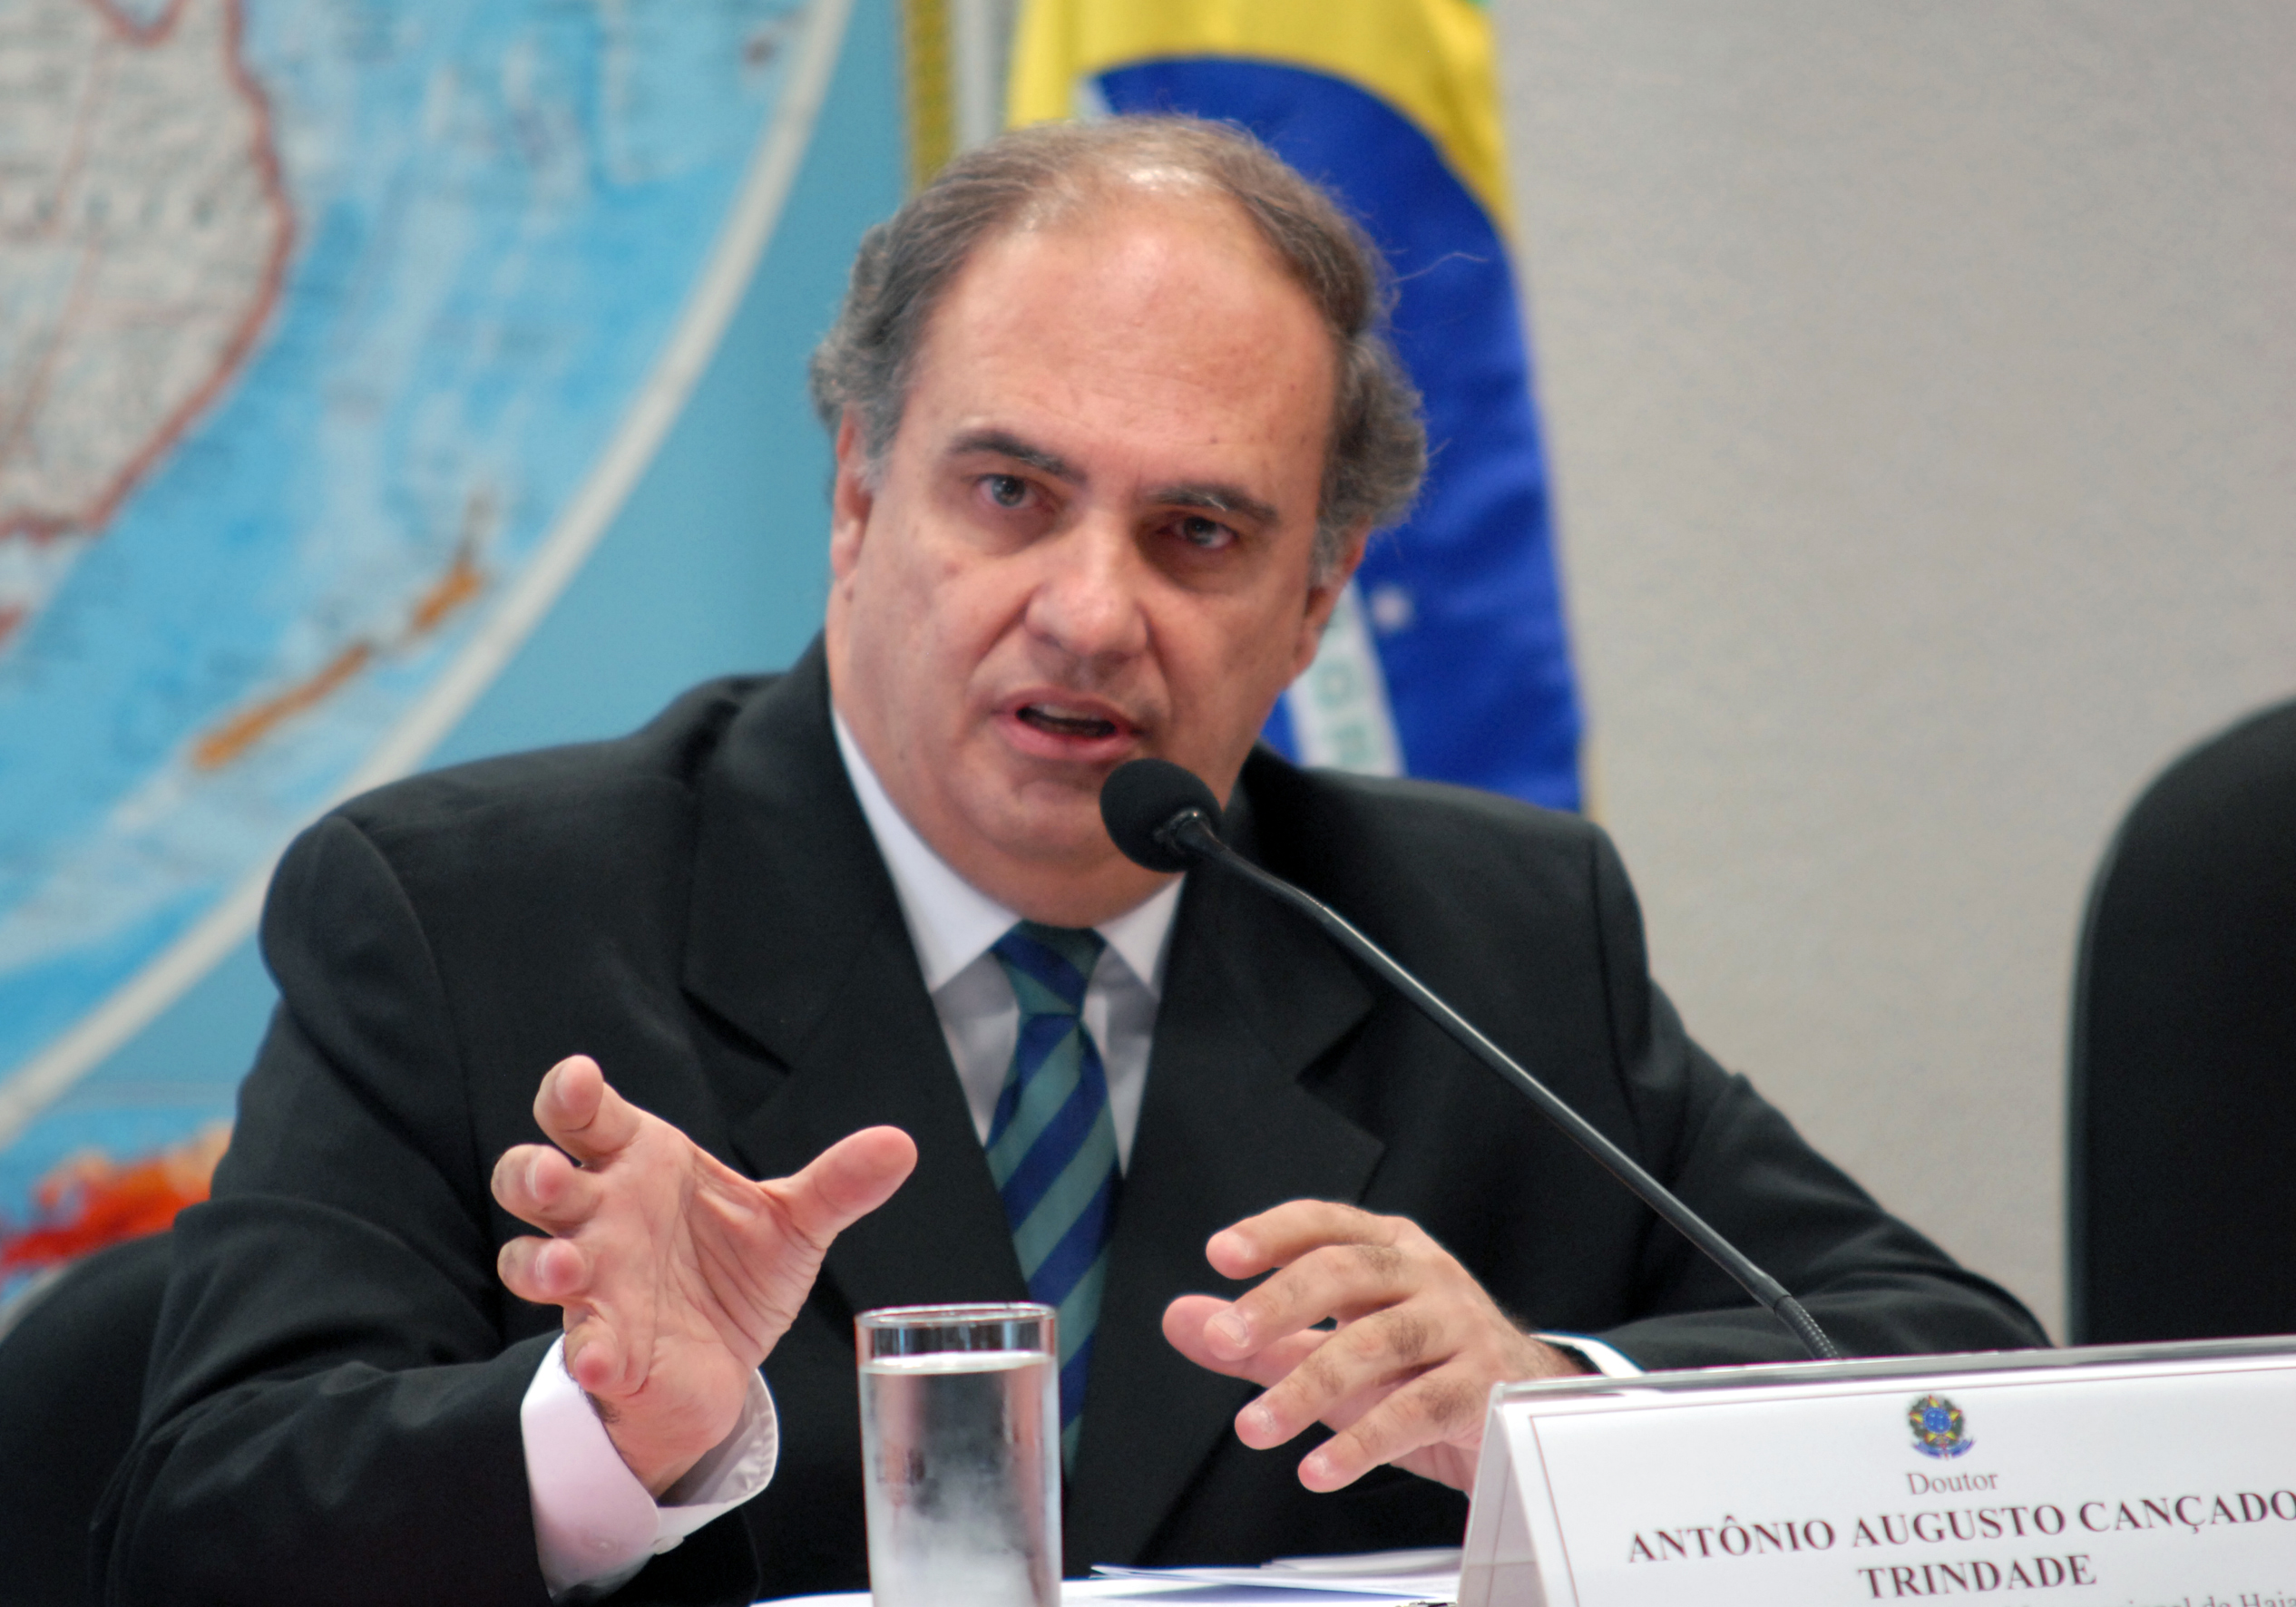 Cançado Trindade at a committee of the [[Brazilian Senate]] in 2008